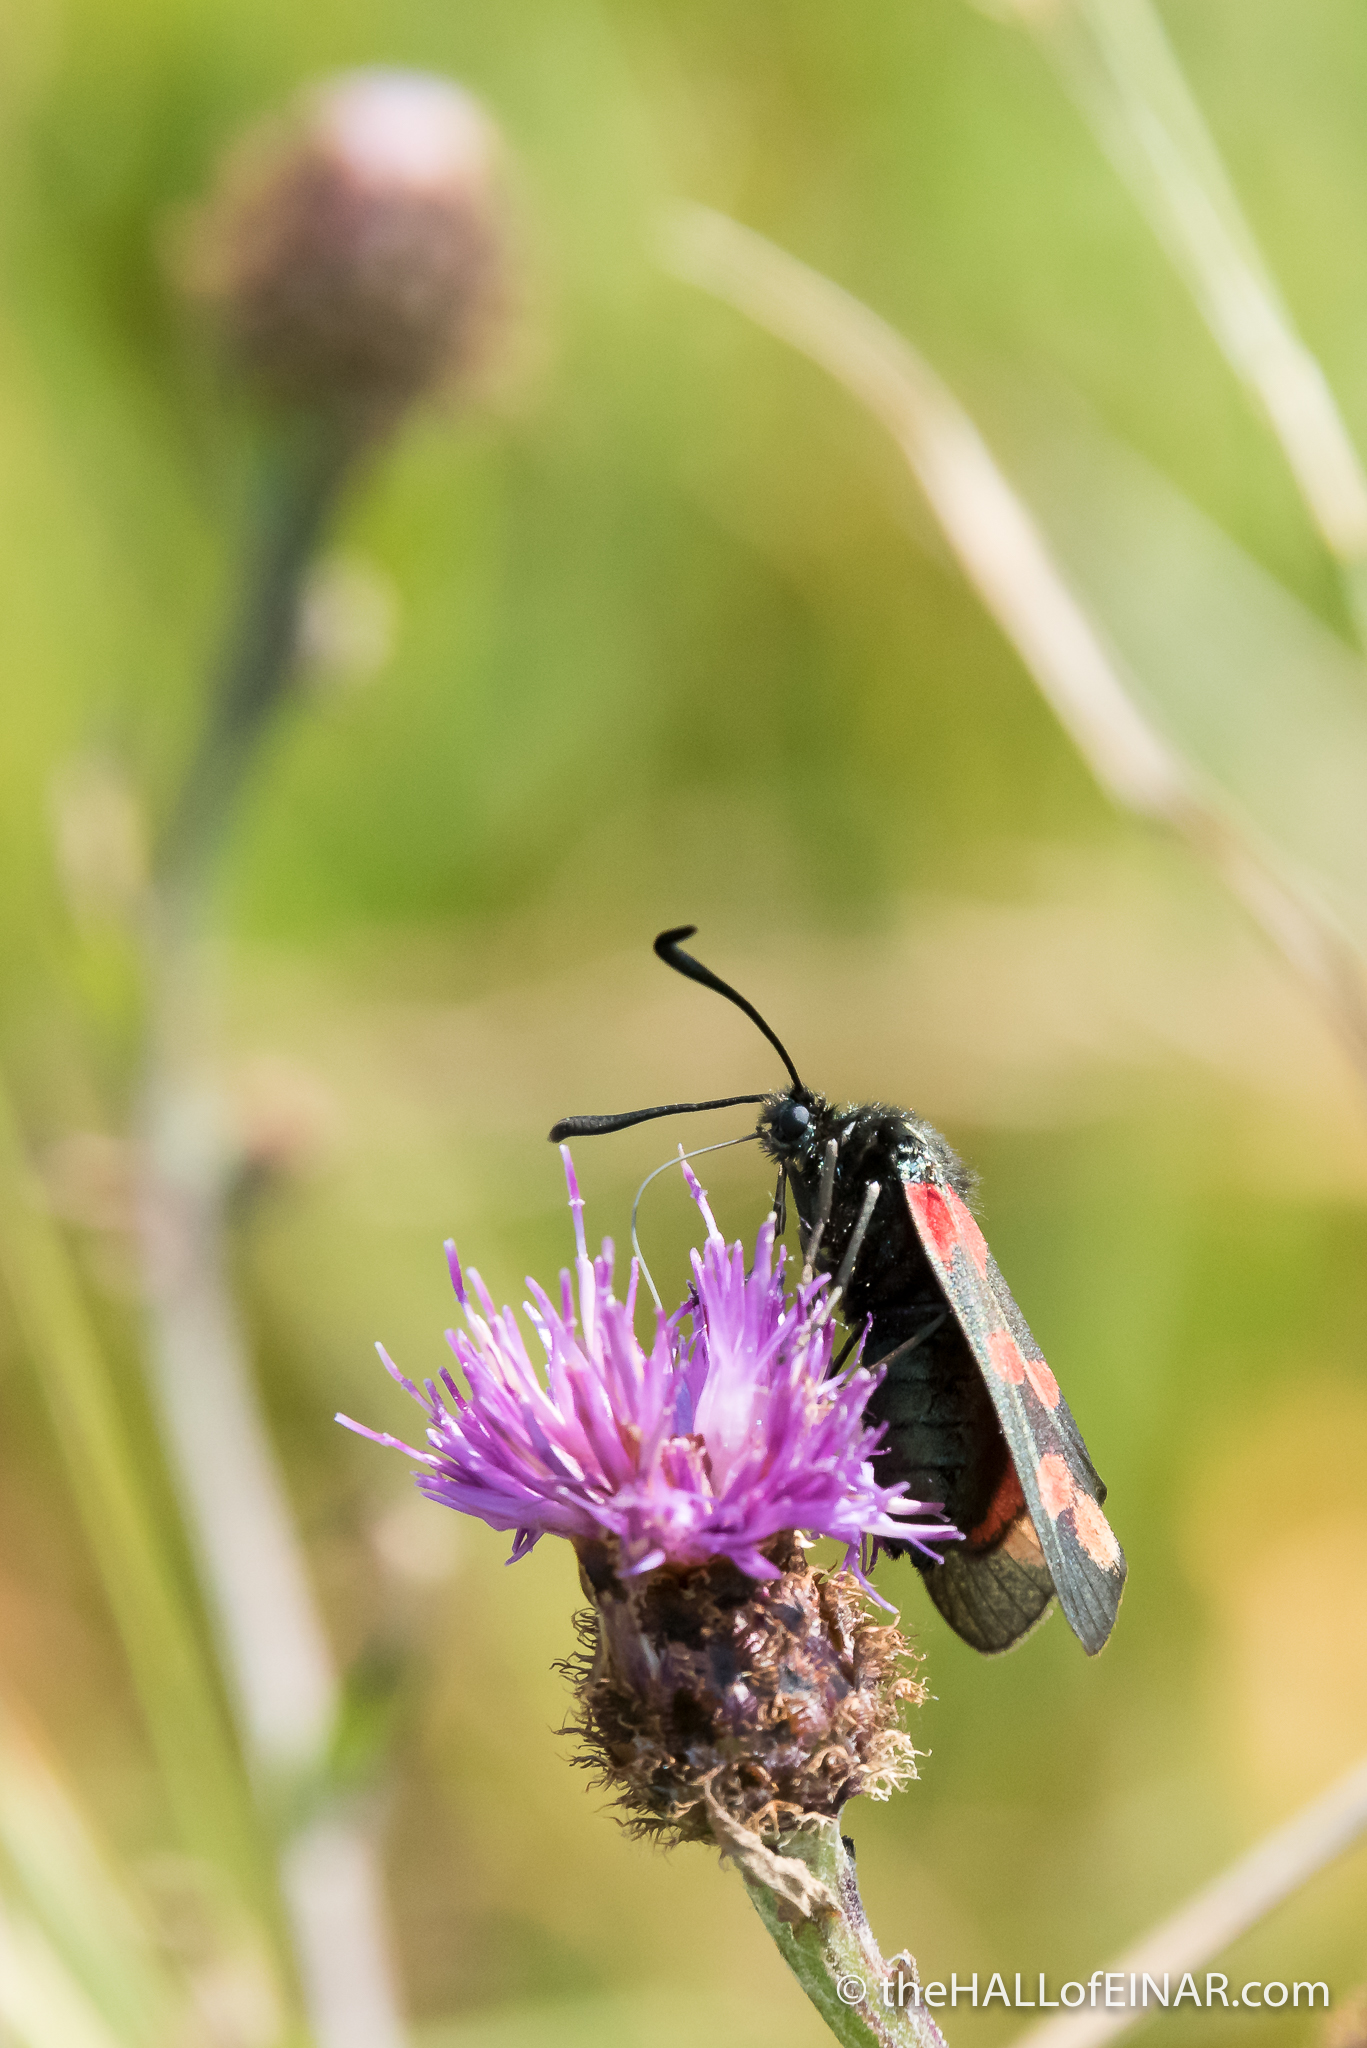 Six Spot Burnet Moth - The Hall of Einar - photograph (c) David Bailey (not the)